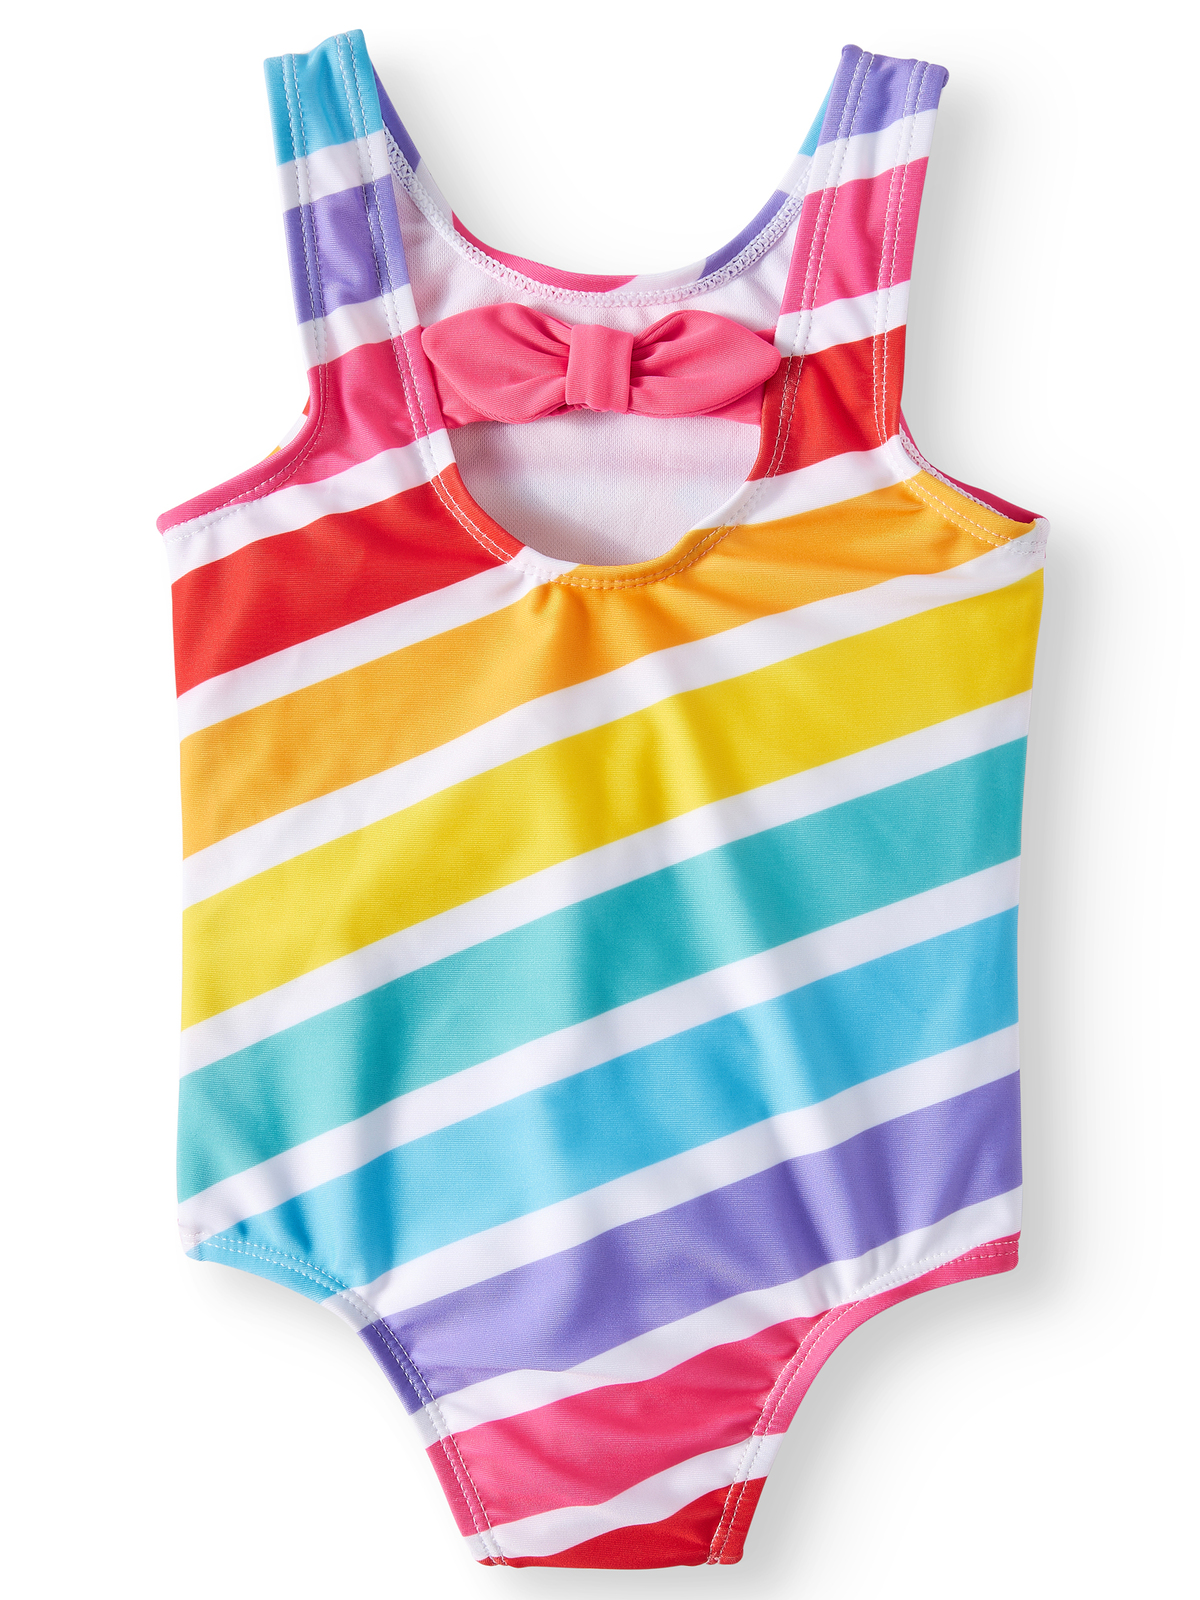 Paw Patrol One Piece Toddler Swimsuit 2T 3T 4T  NWT sHiPs FaSt!